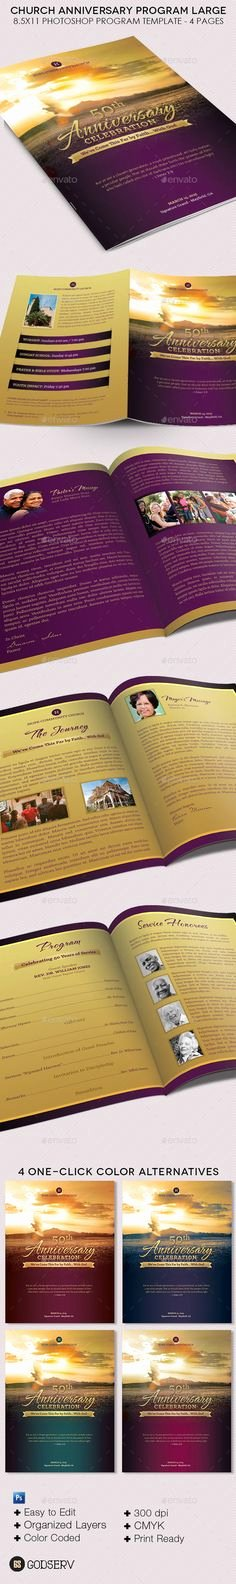 Free Pastor Anniversary Program Templates Lovely Free Printable Church Program Template